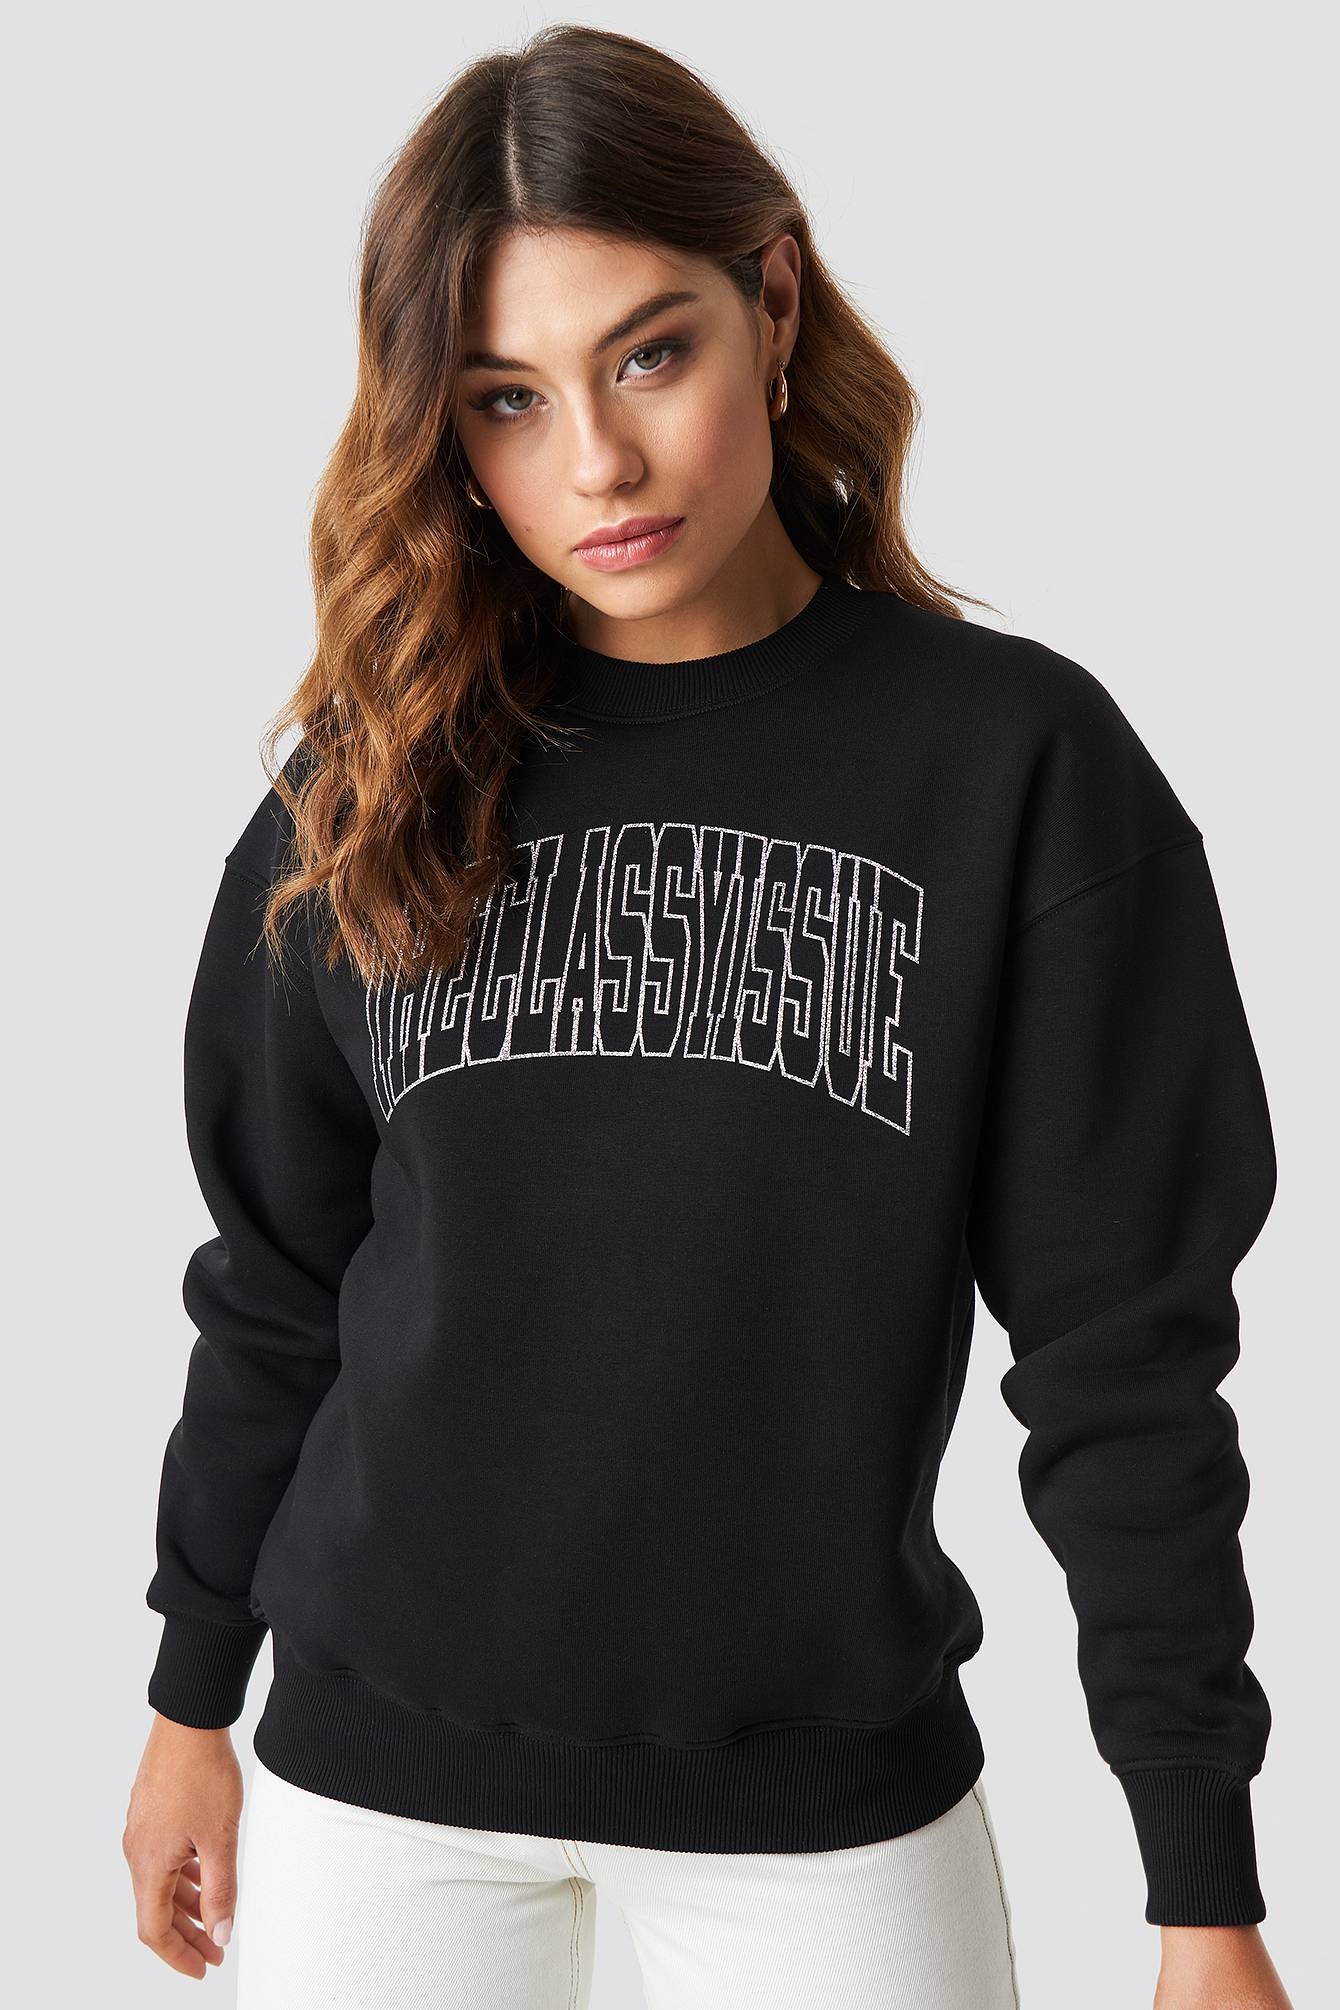 The Classy Issue Midnight Sweater - Black